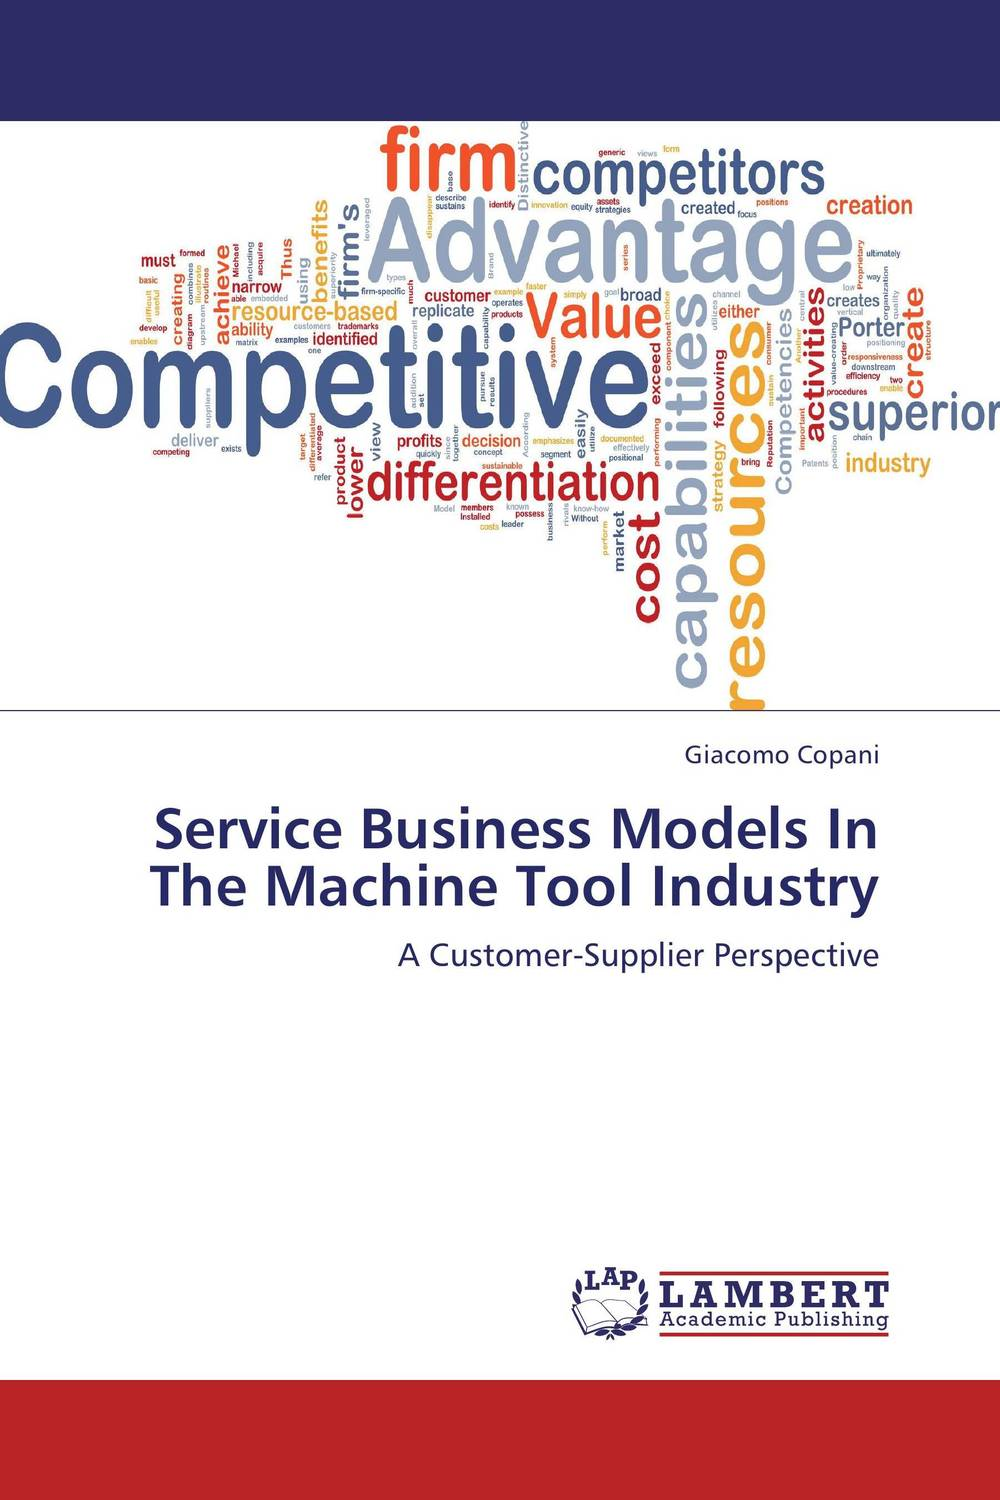 Service Business Models In The Machine Tool Industry evan stubbs big data big innovation enabling competitive differentiation through business analytics